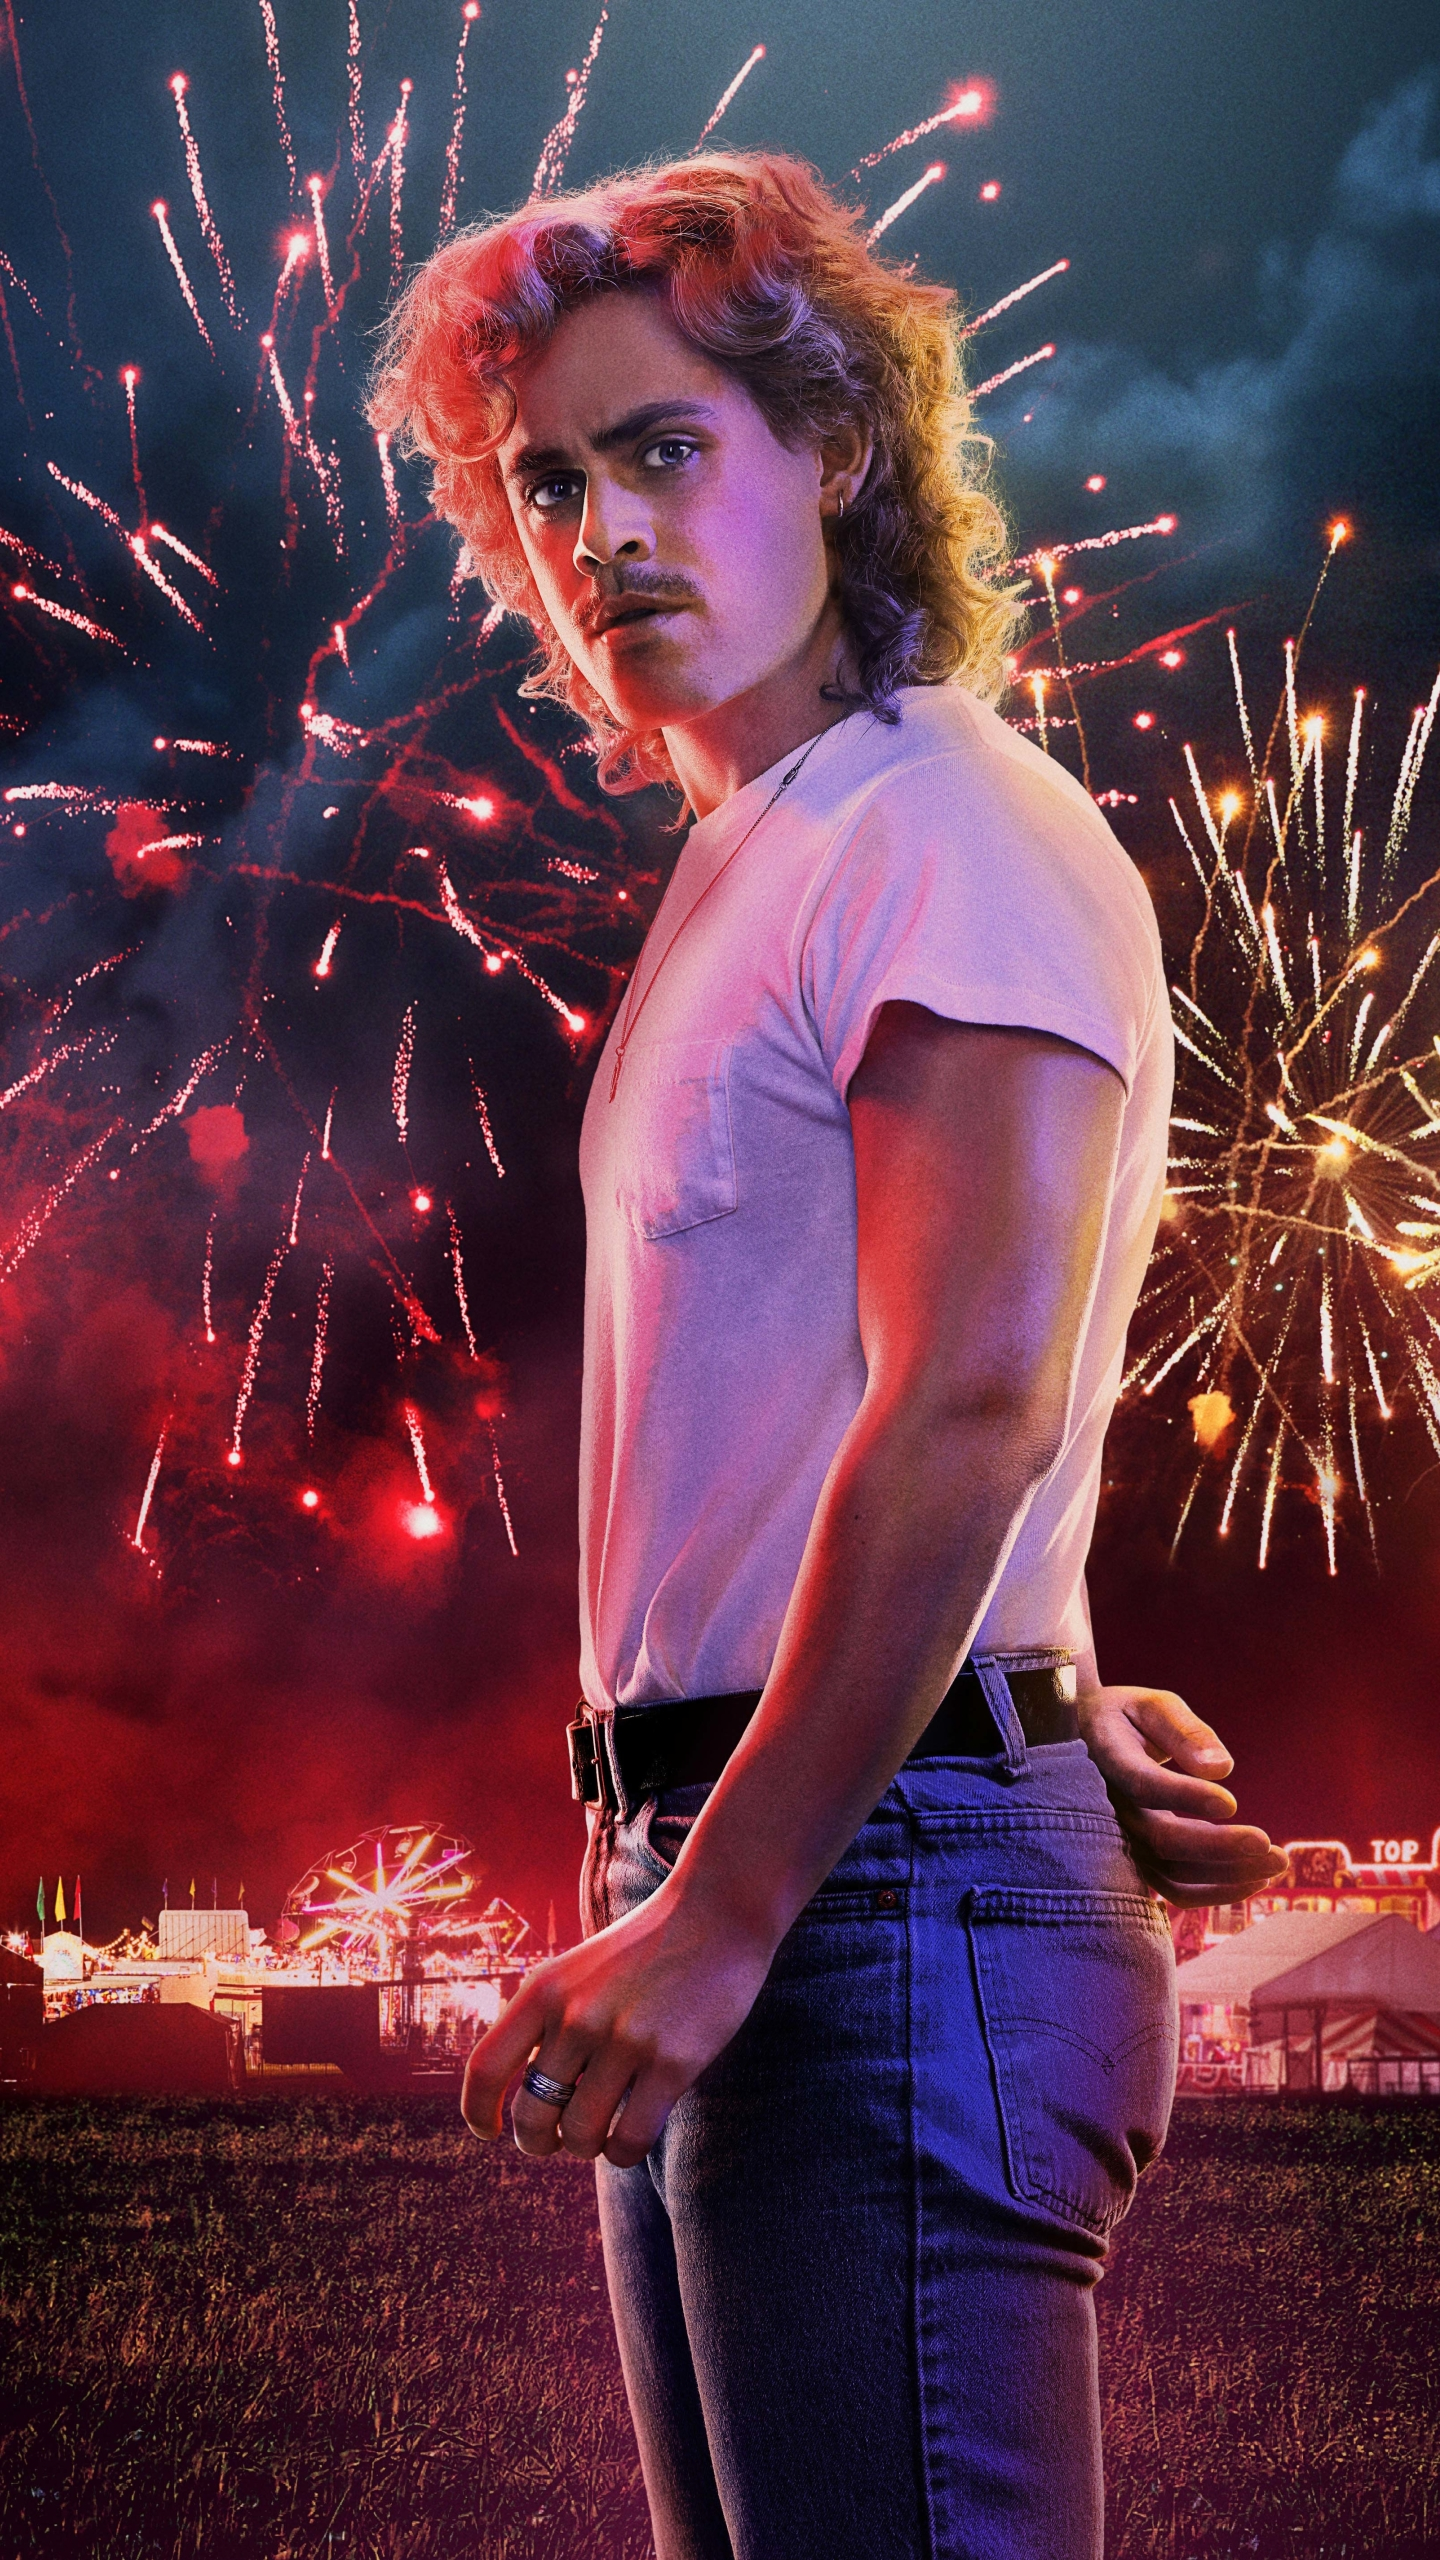 1440x2560 Dacre Montgomery Stranger Things 3 Poster Samsung